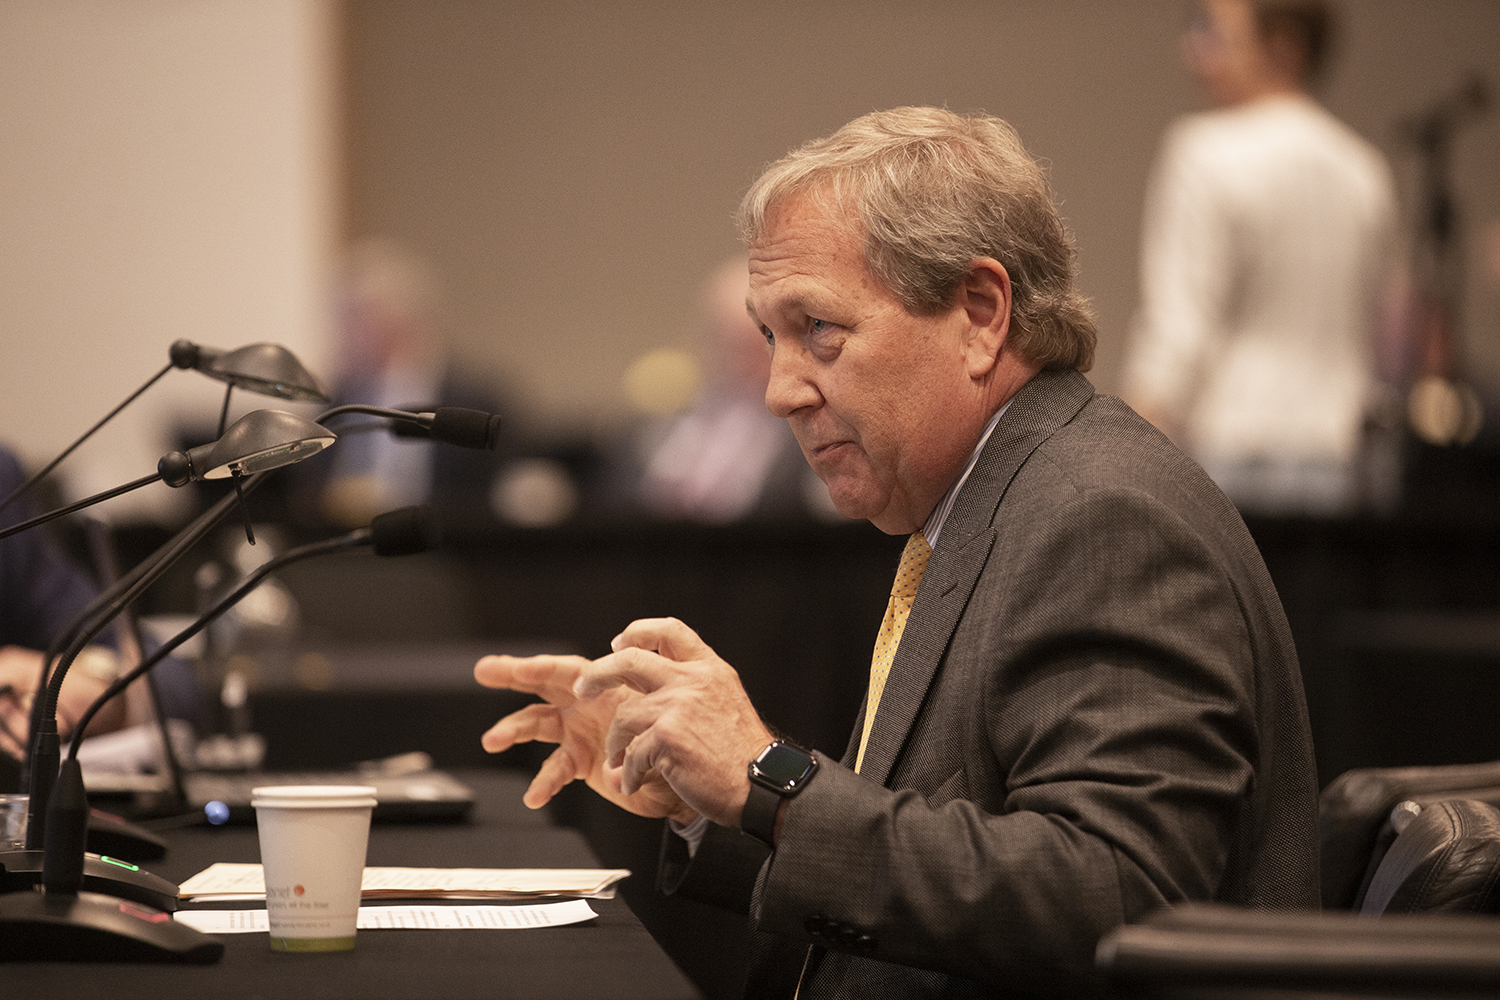 University of Iowa President Bruce Harreld speaks in front of the Board of Regents on Thursday, April 18th, 2019.